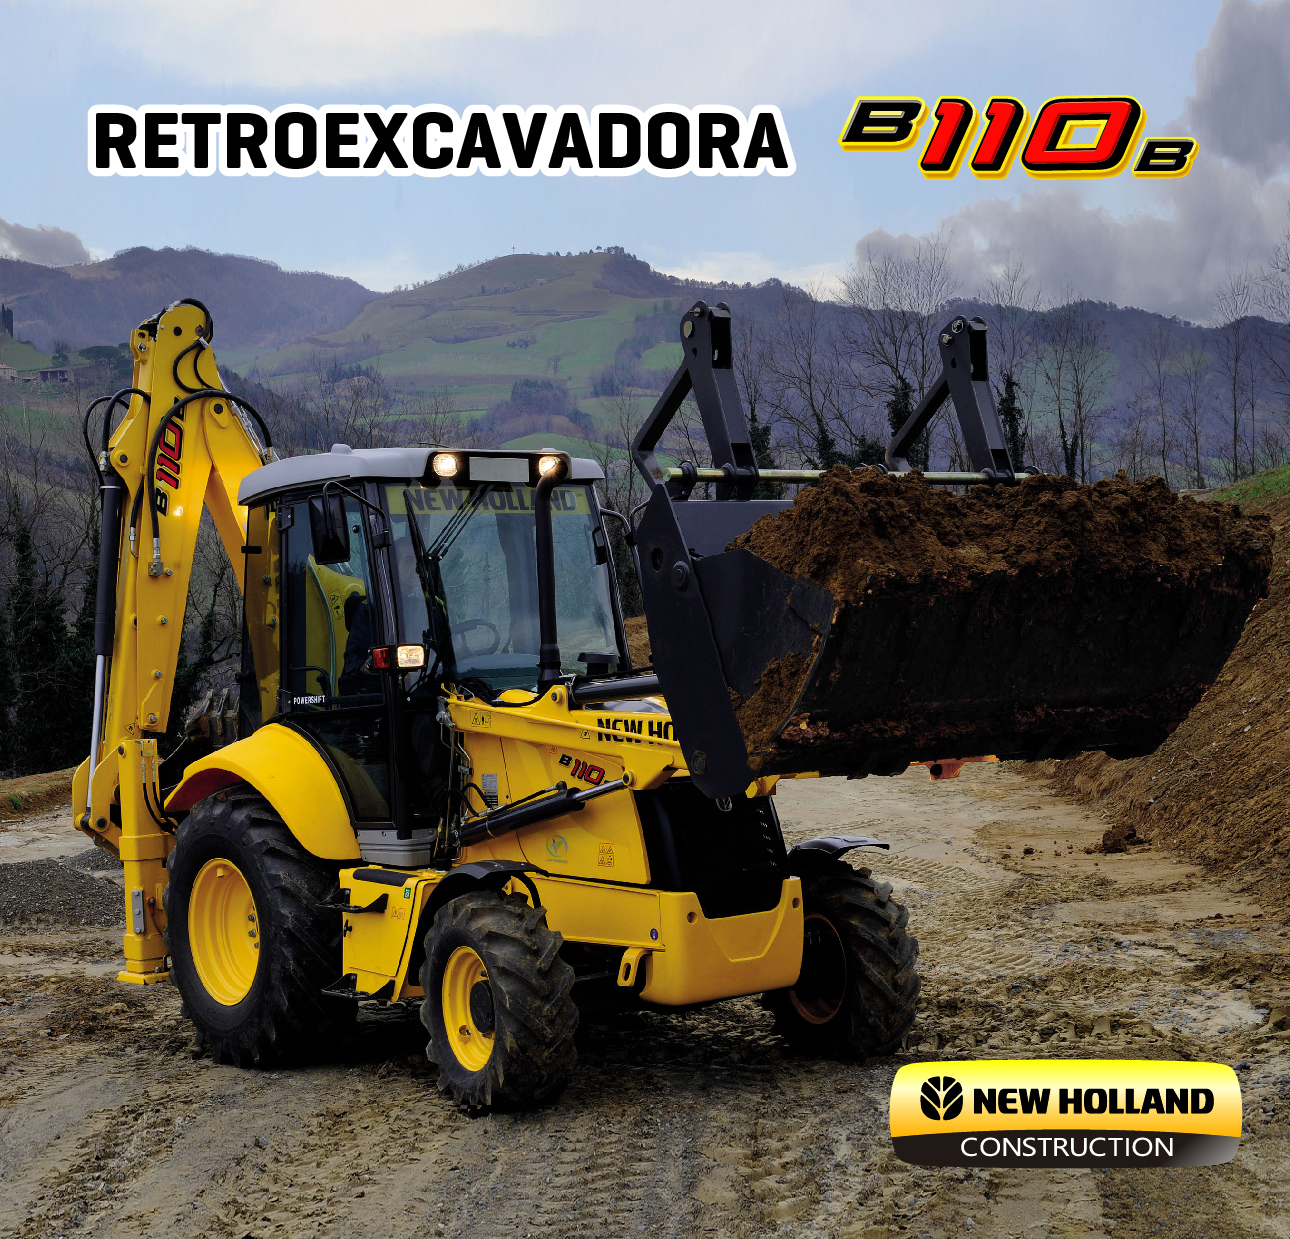 Retroexcavadora b110b new holland construccion peru